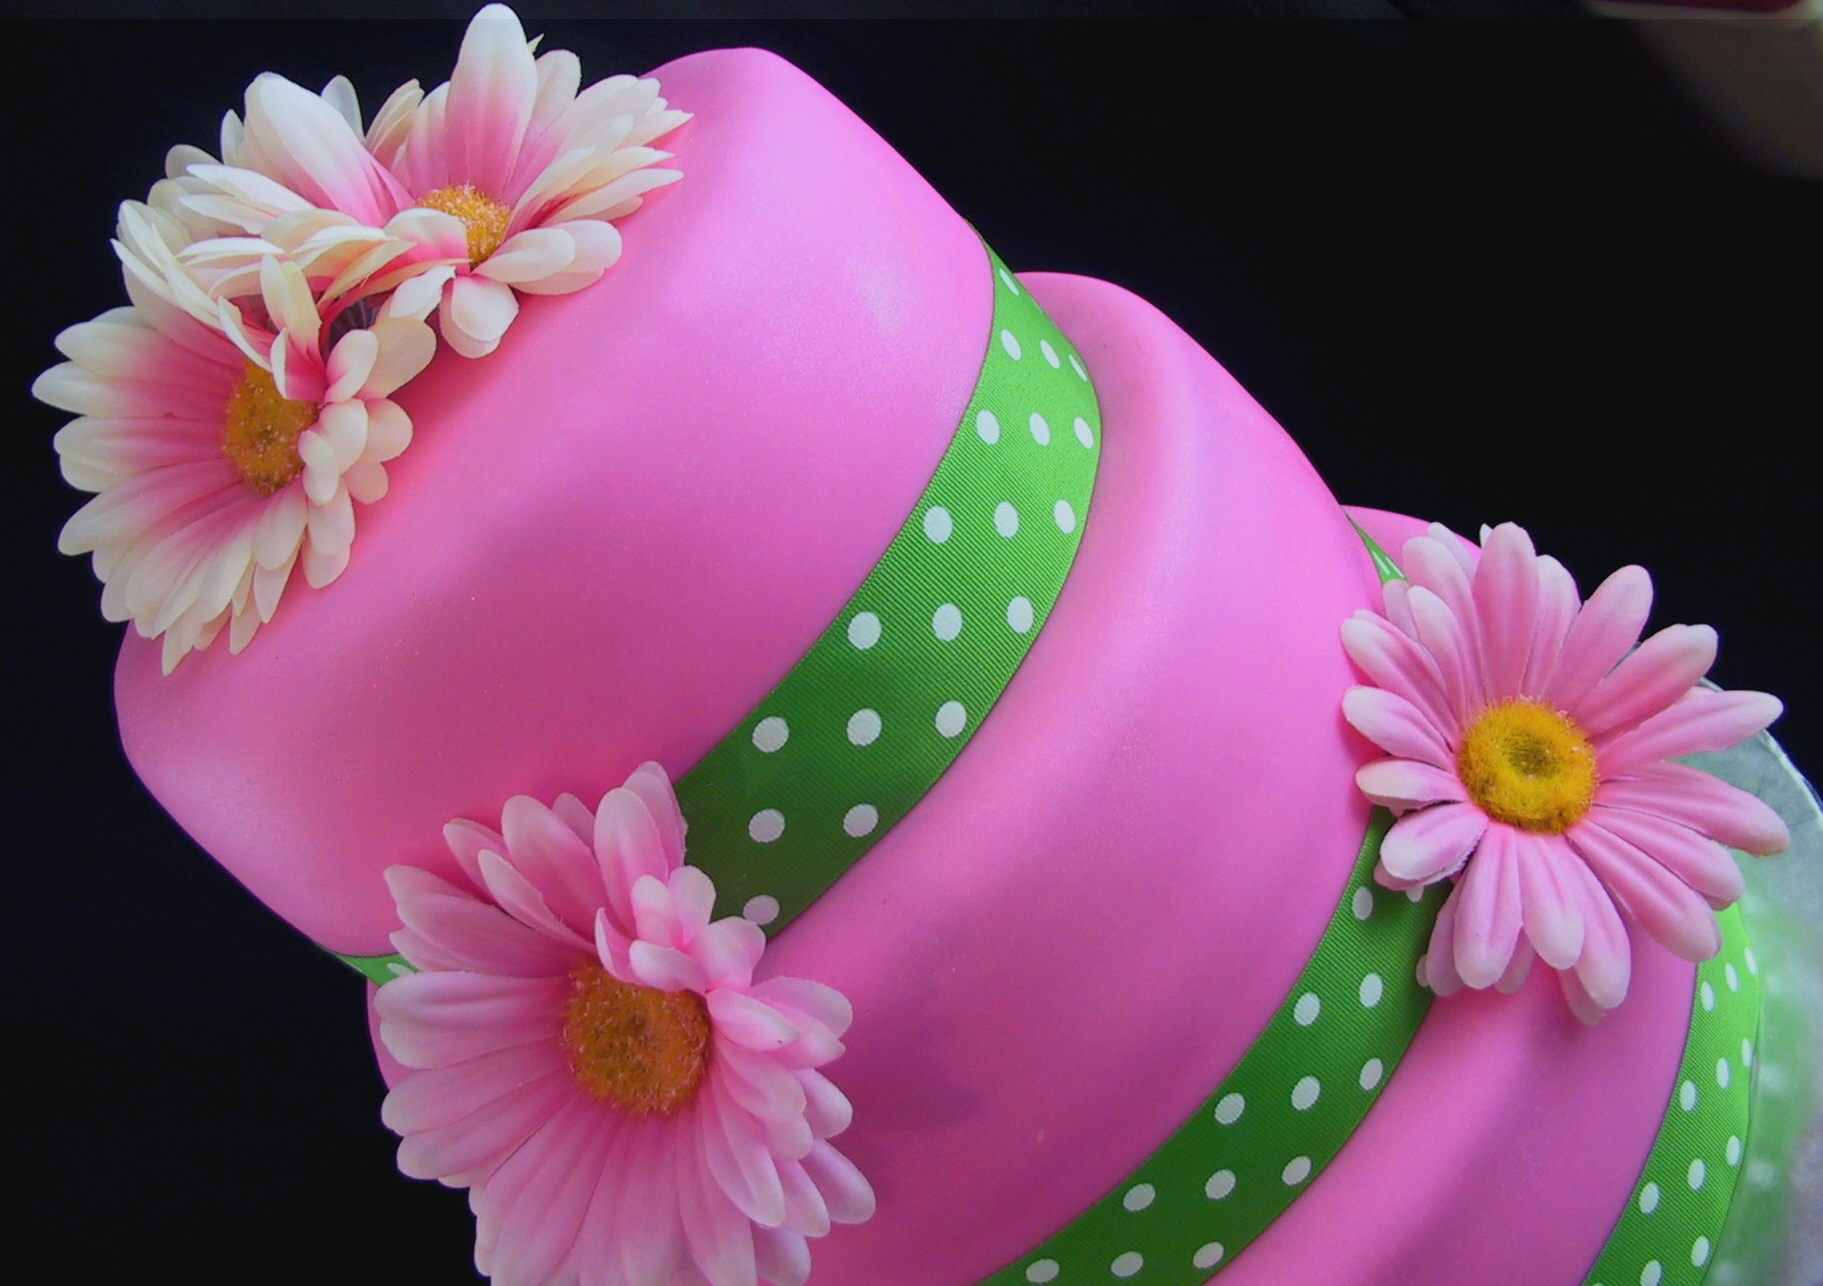 spring cake | The Twisted Sifter